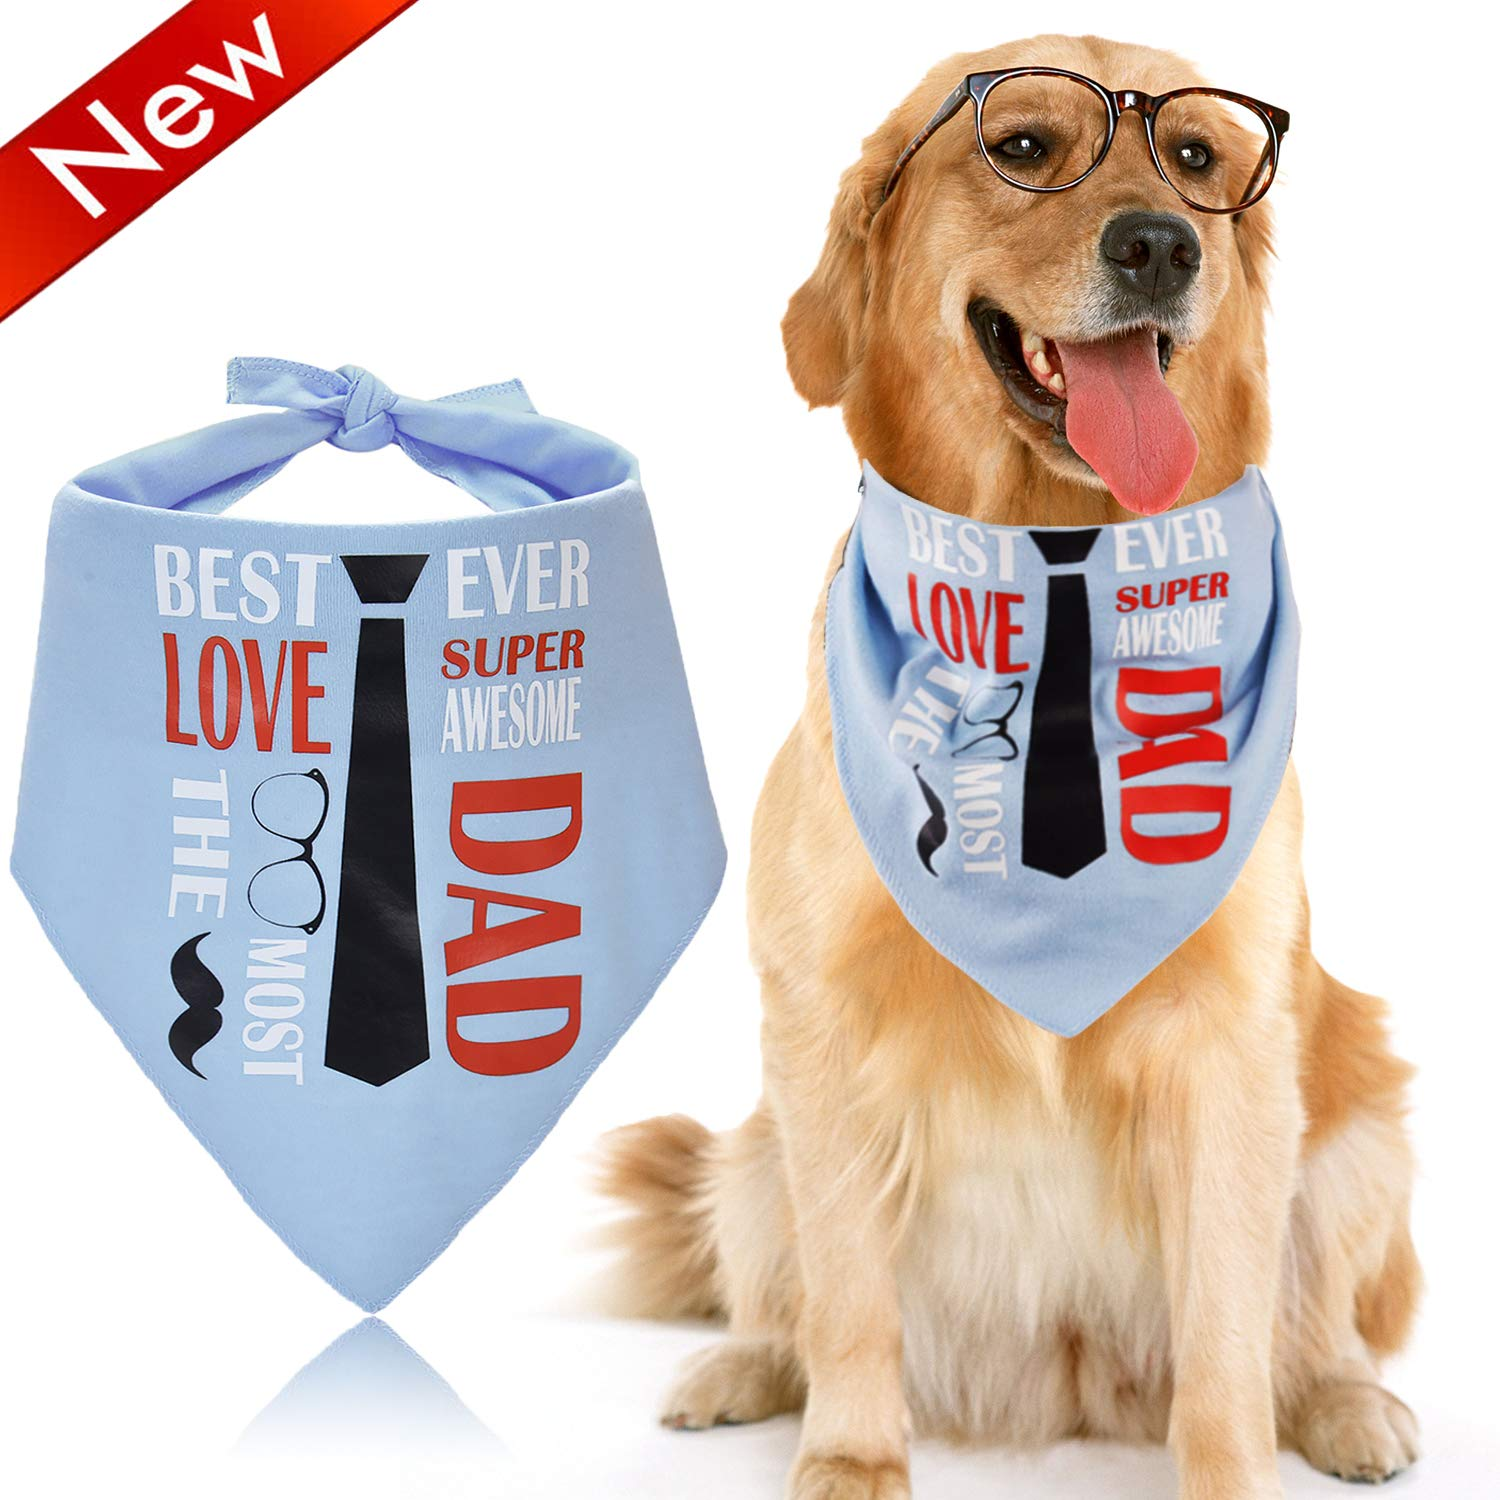 Legendog Dog Bandana Personalised Dog Bandana 'I LOVE DAD' Theme Pet Bandana Creative Scarf Pet Bib for Medium Large Cat Dog